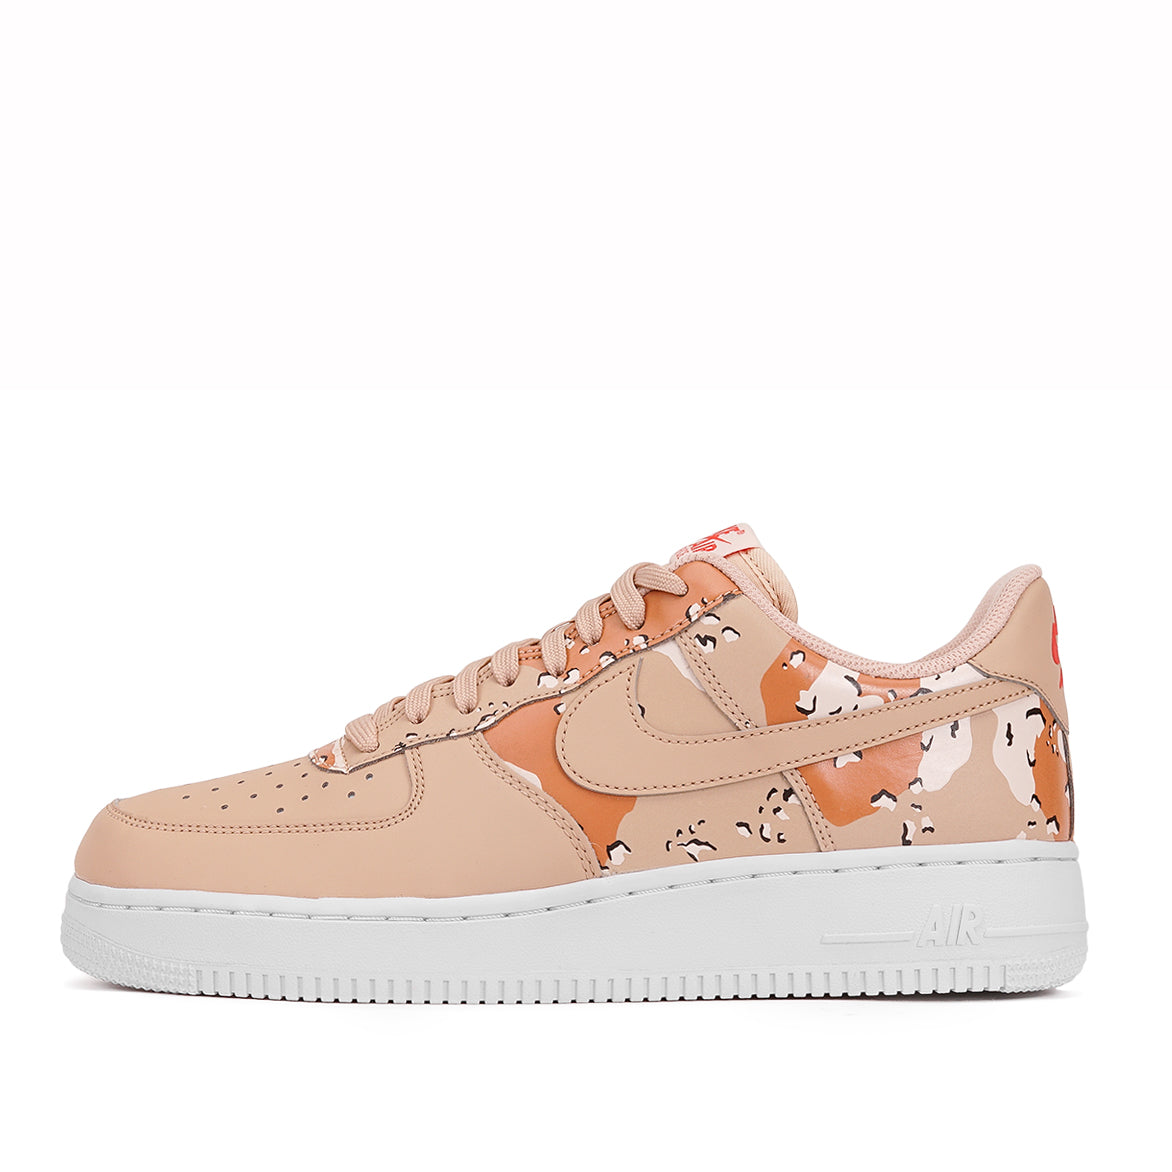 "AIR FORCE 1 `07 LV8 ""COUNTRY CAMO"" - BIO BEIGE"